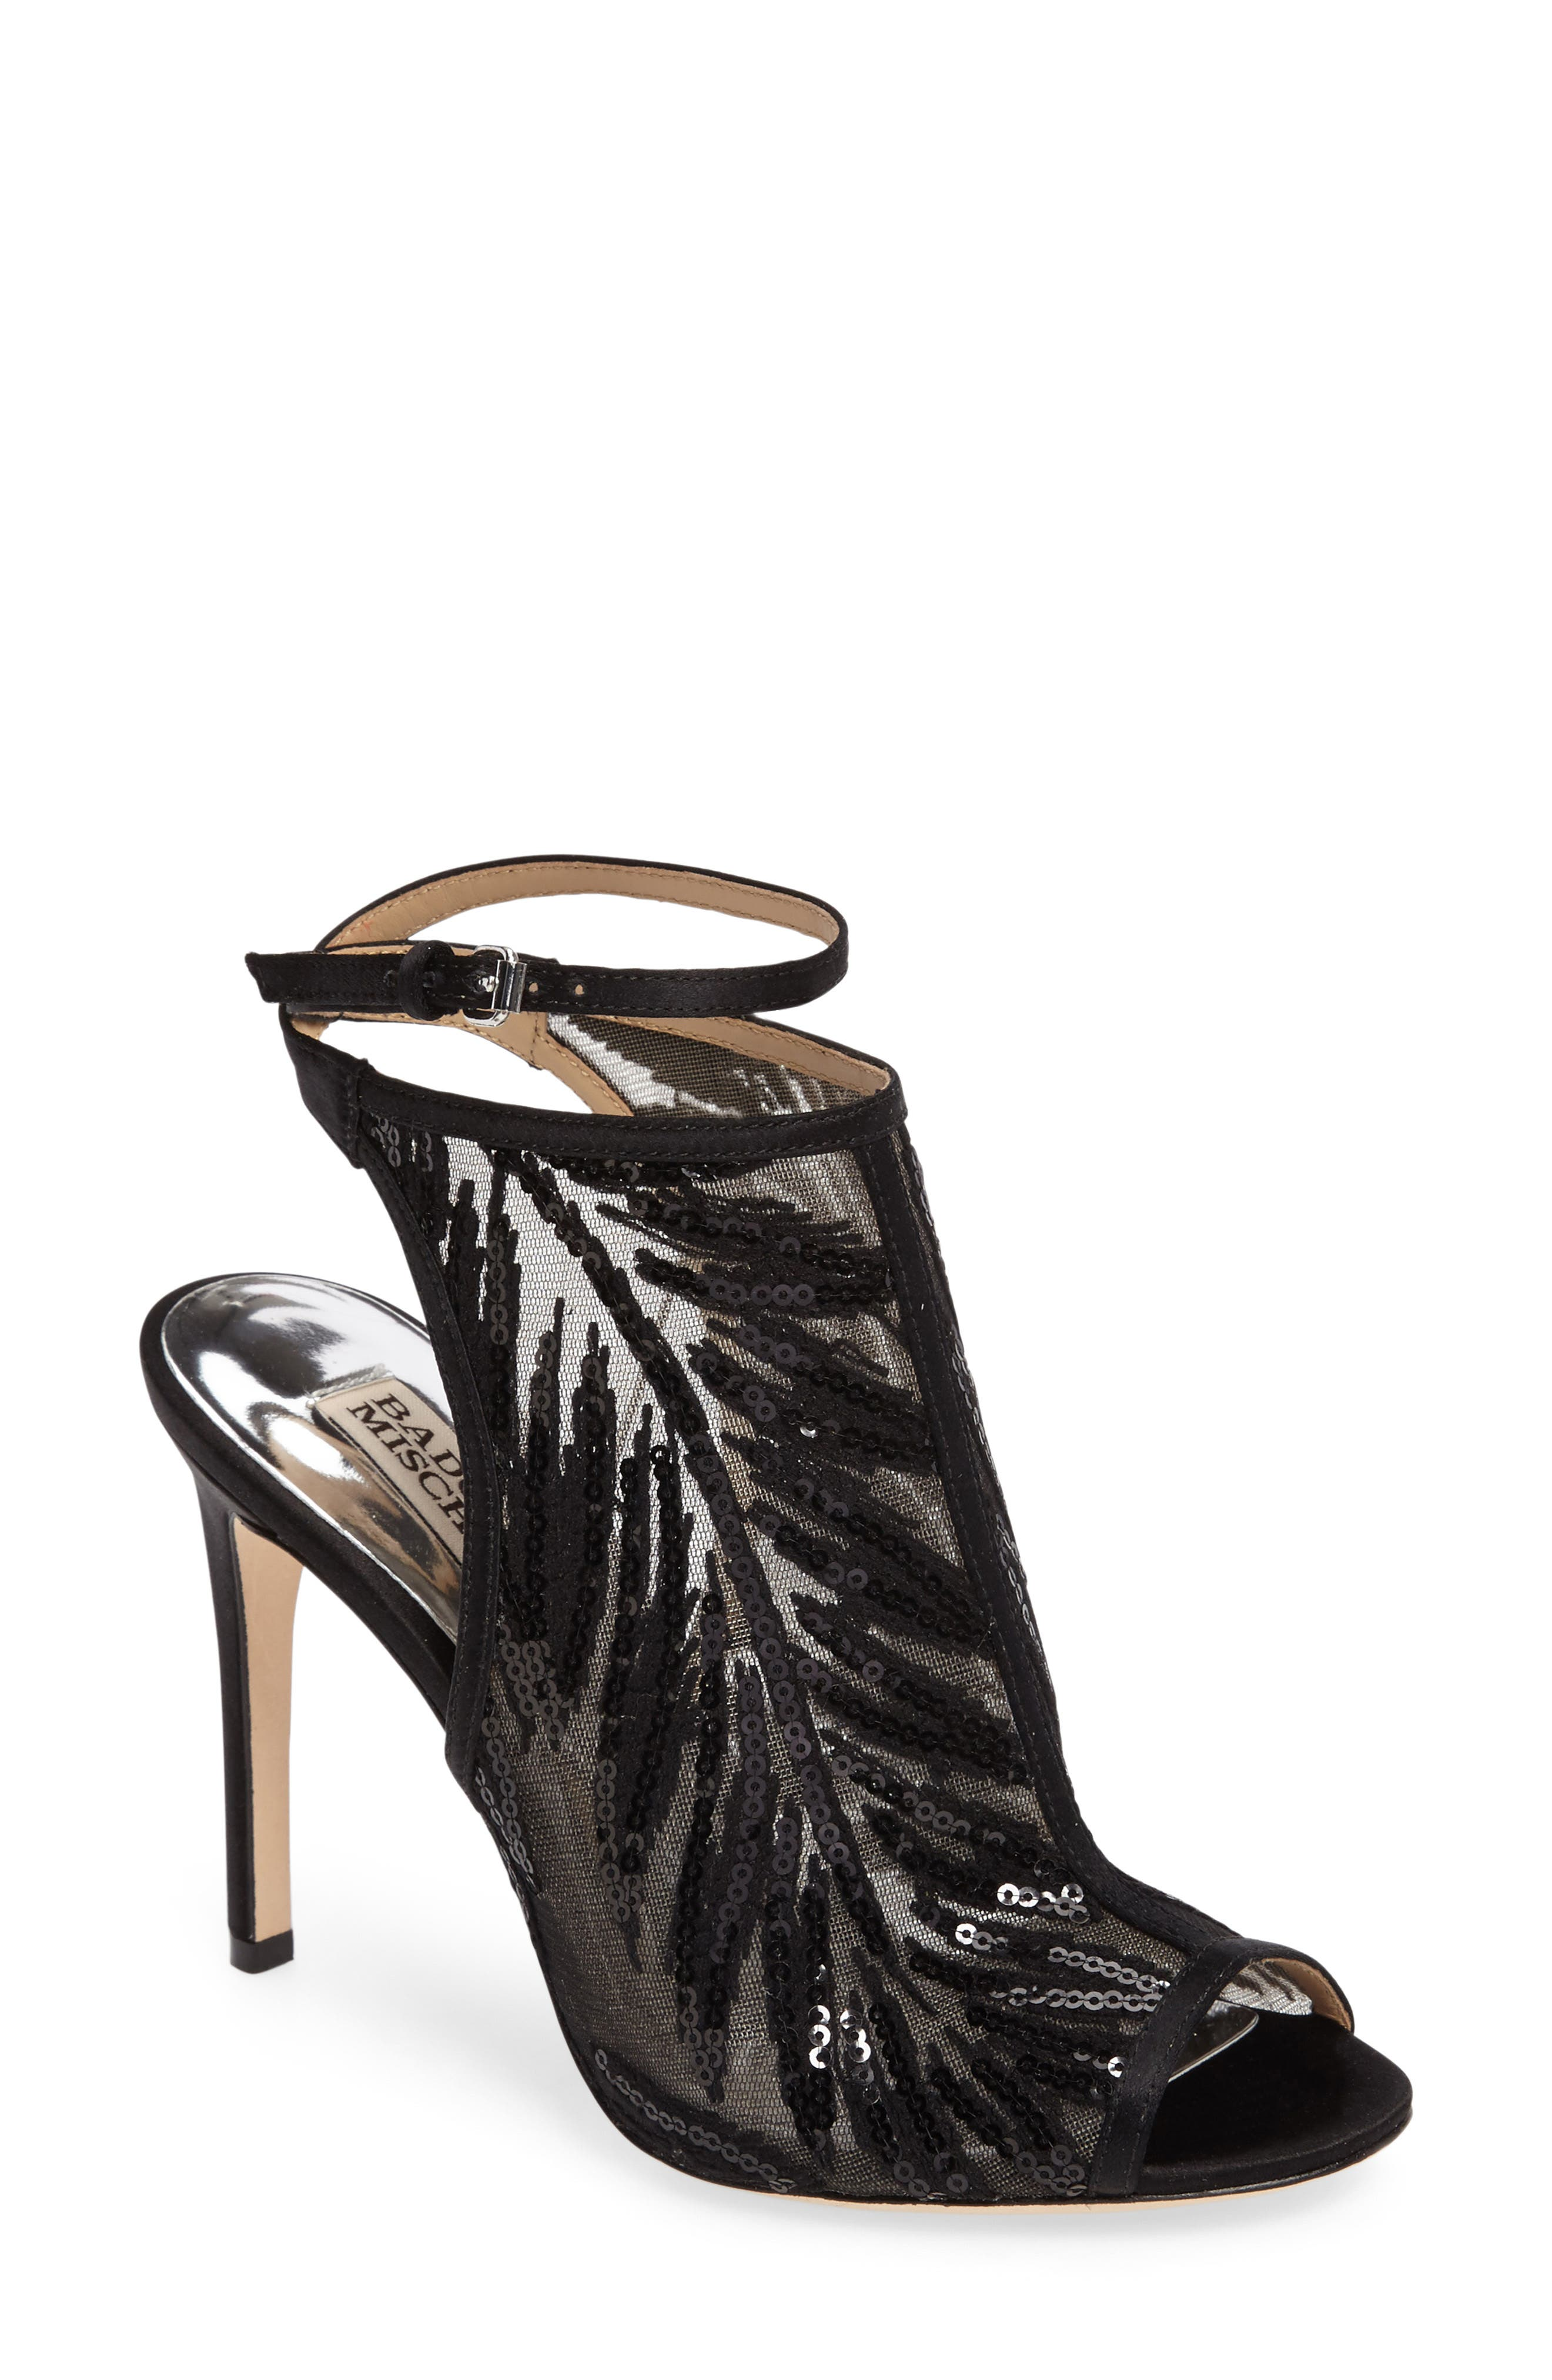 BADGLEY MISCHKA Blakely Sequin Illusion Sandal